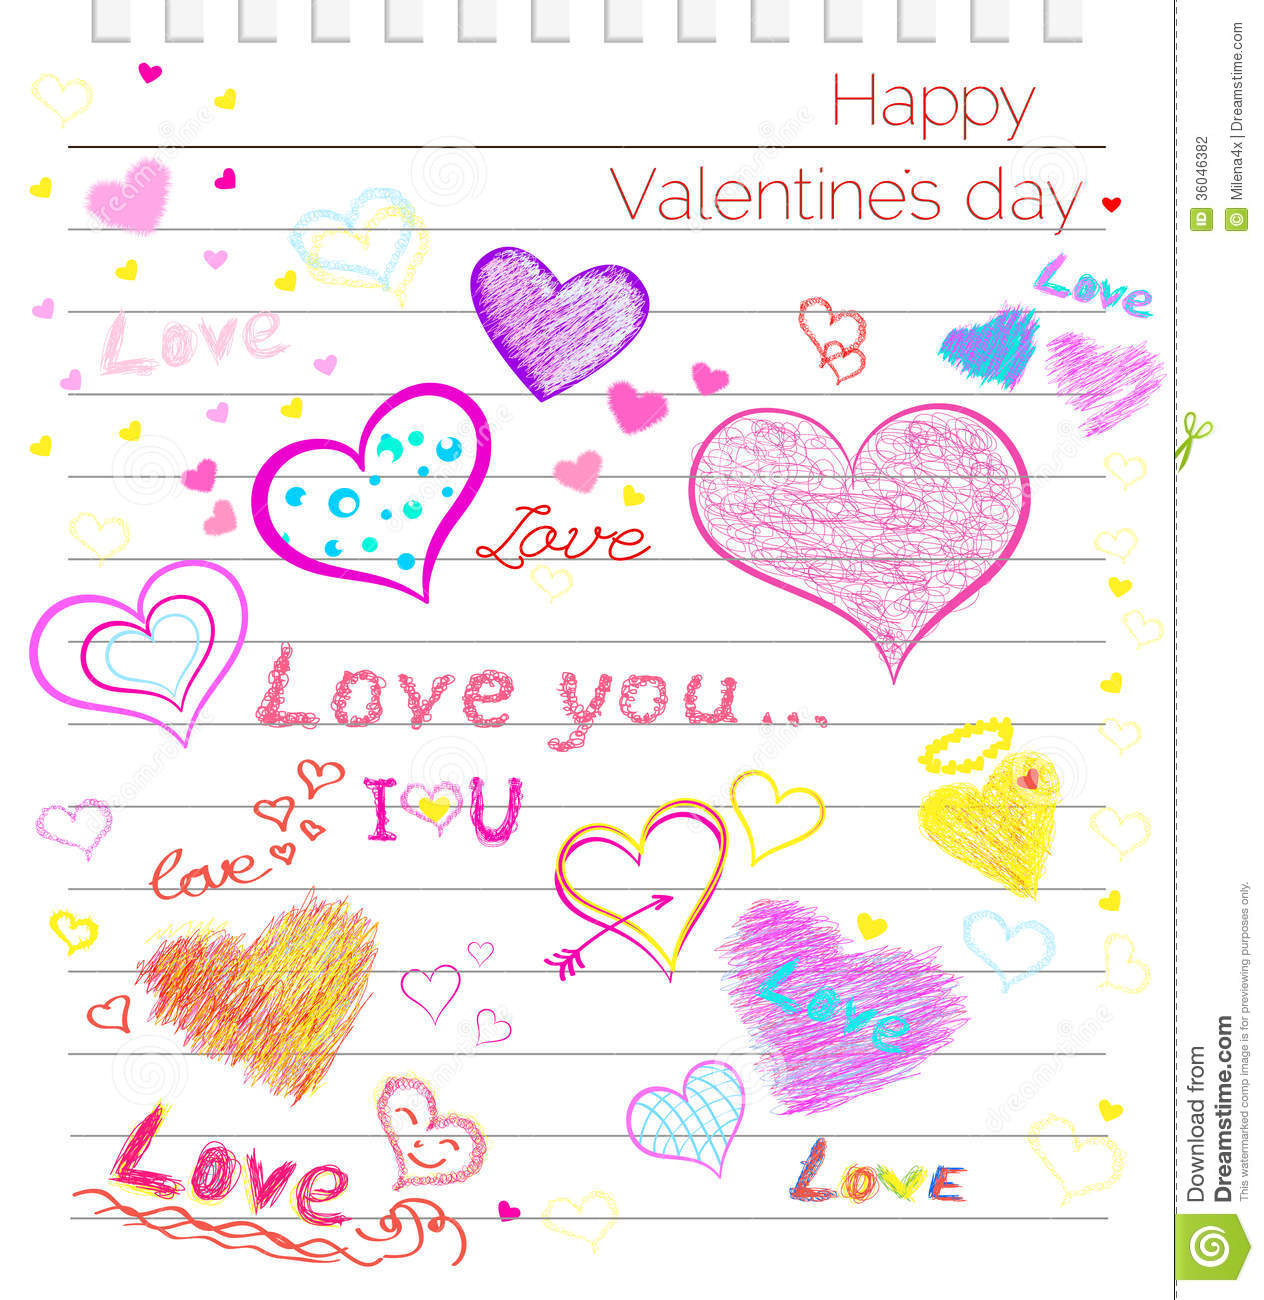 Love hearts happy clipart picture transparent Happy Valentines Day Love, Hearts Sketchy Notebook Stock ... picture transparent